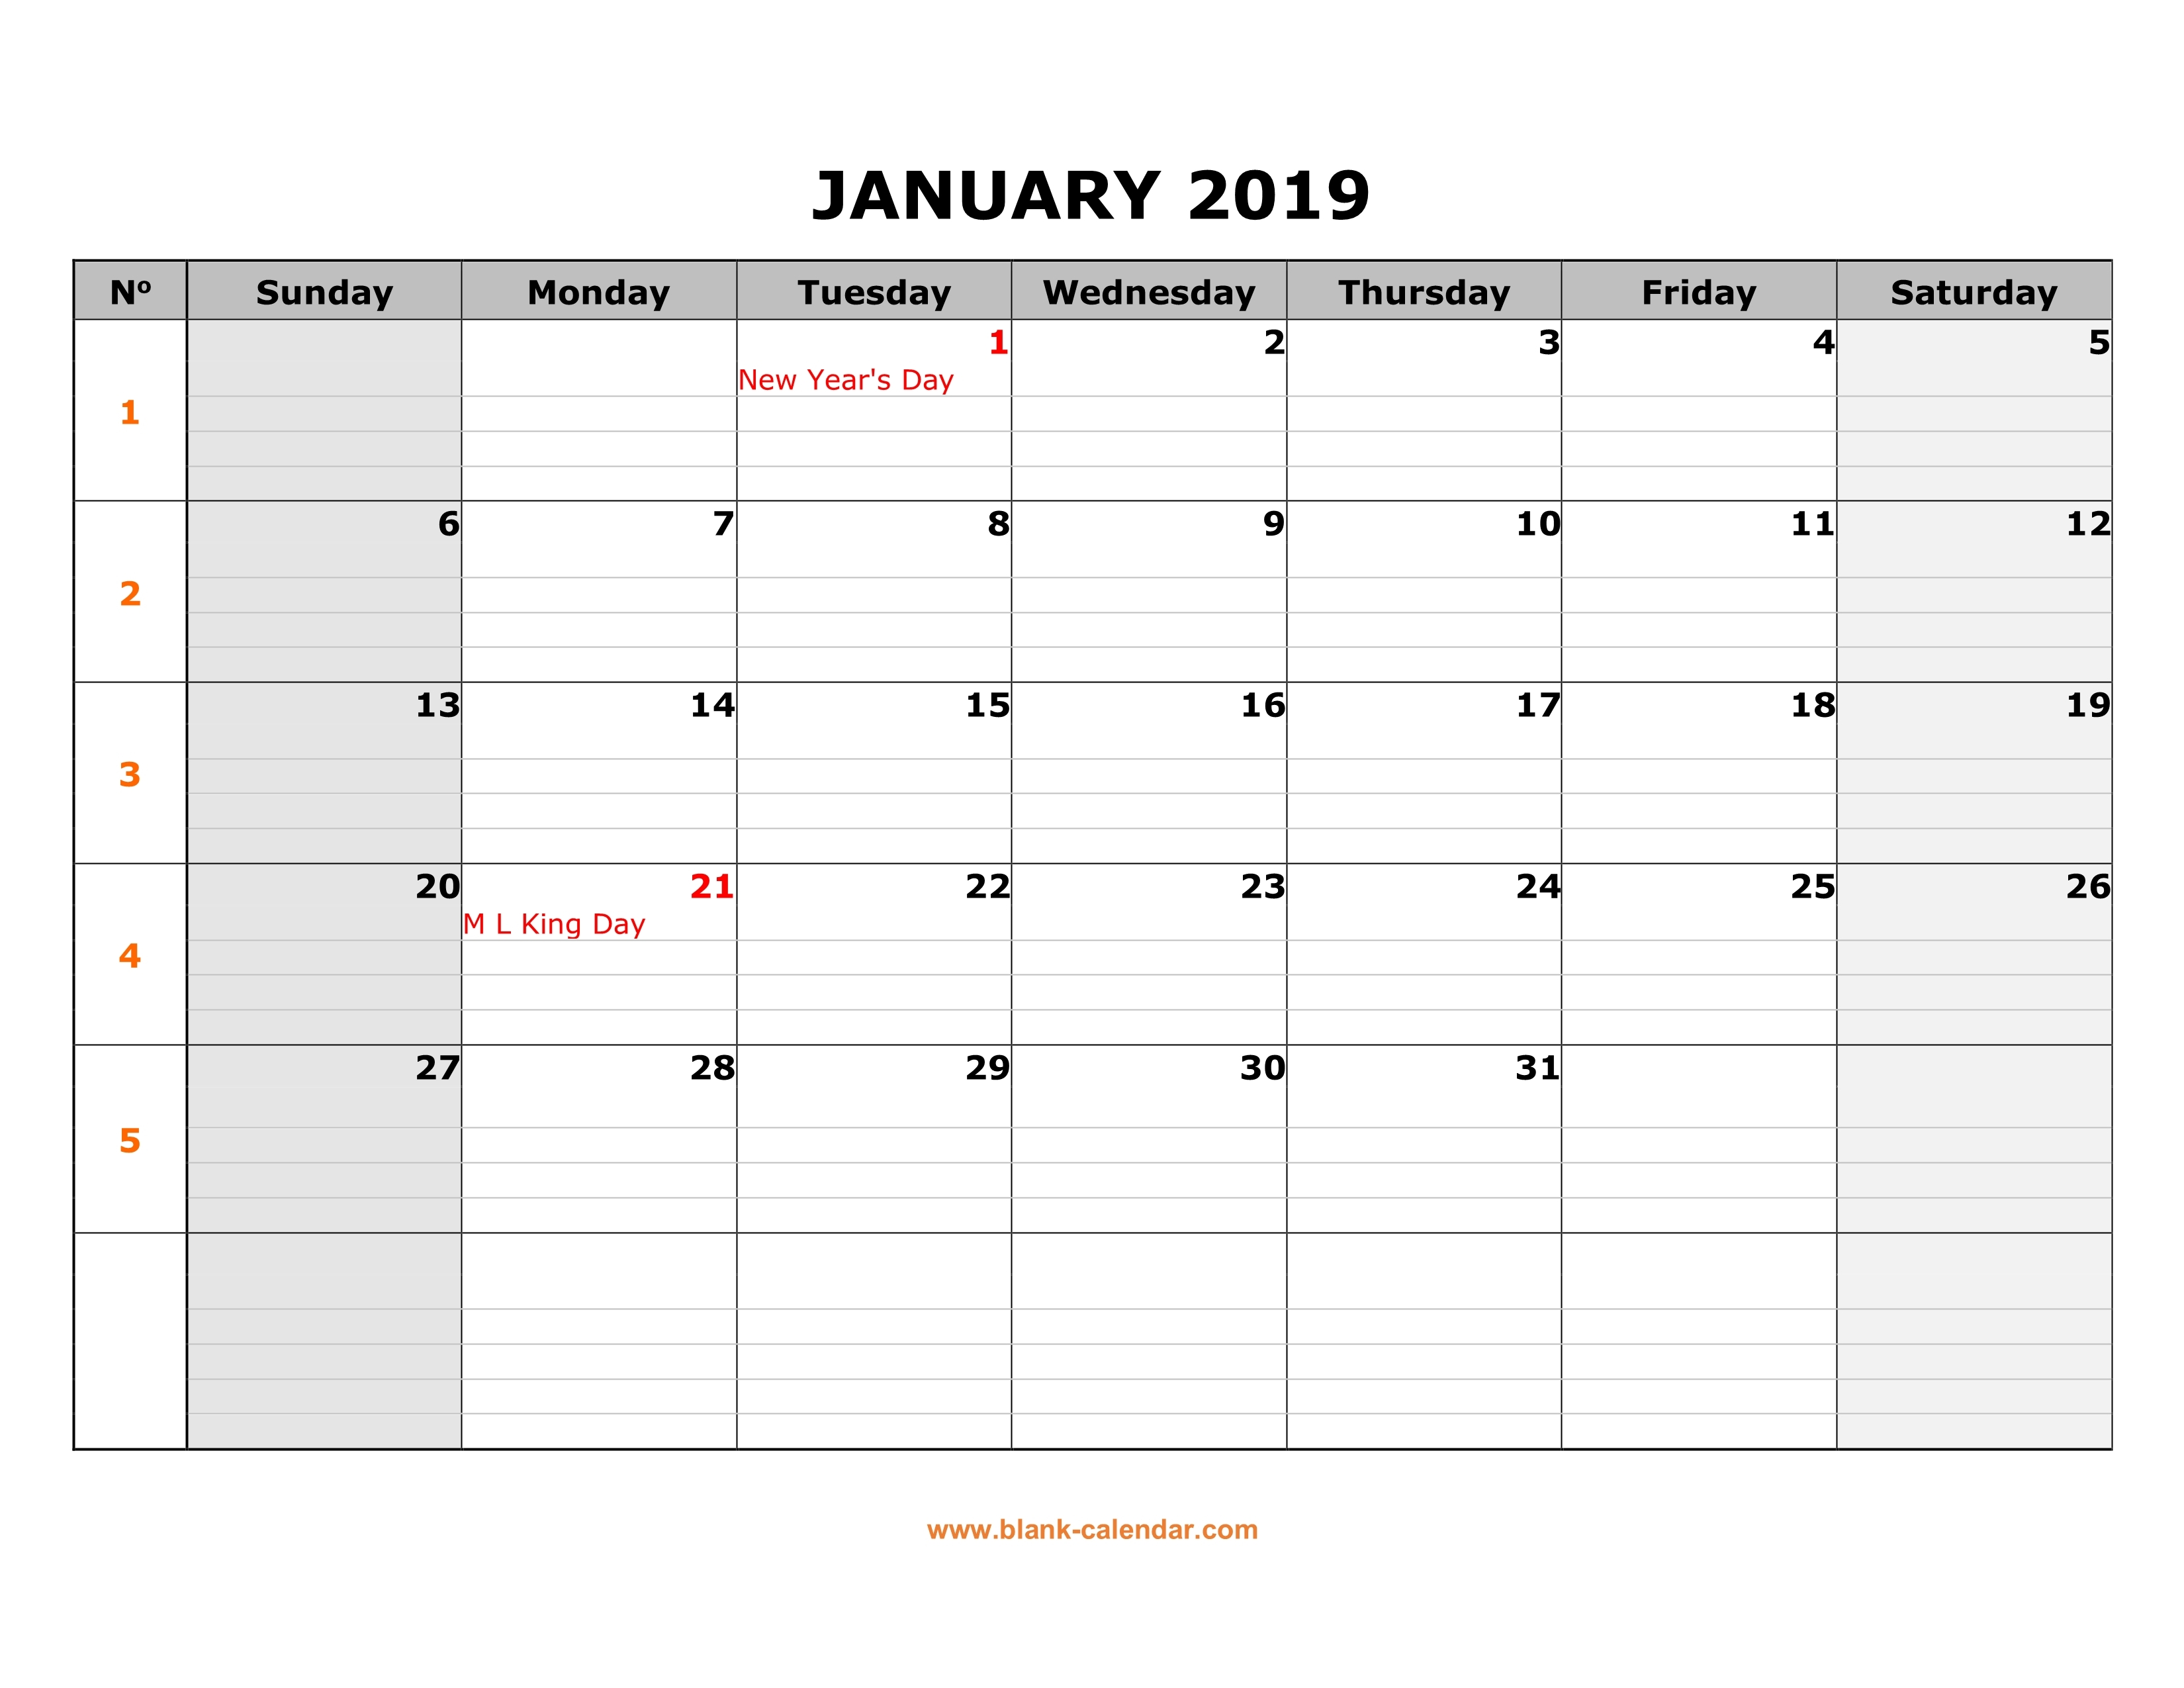 Free Download Printable Calendar 2019 Large Box Grid Space For Notes